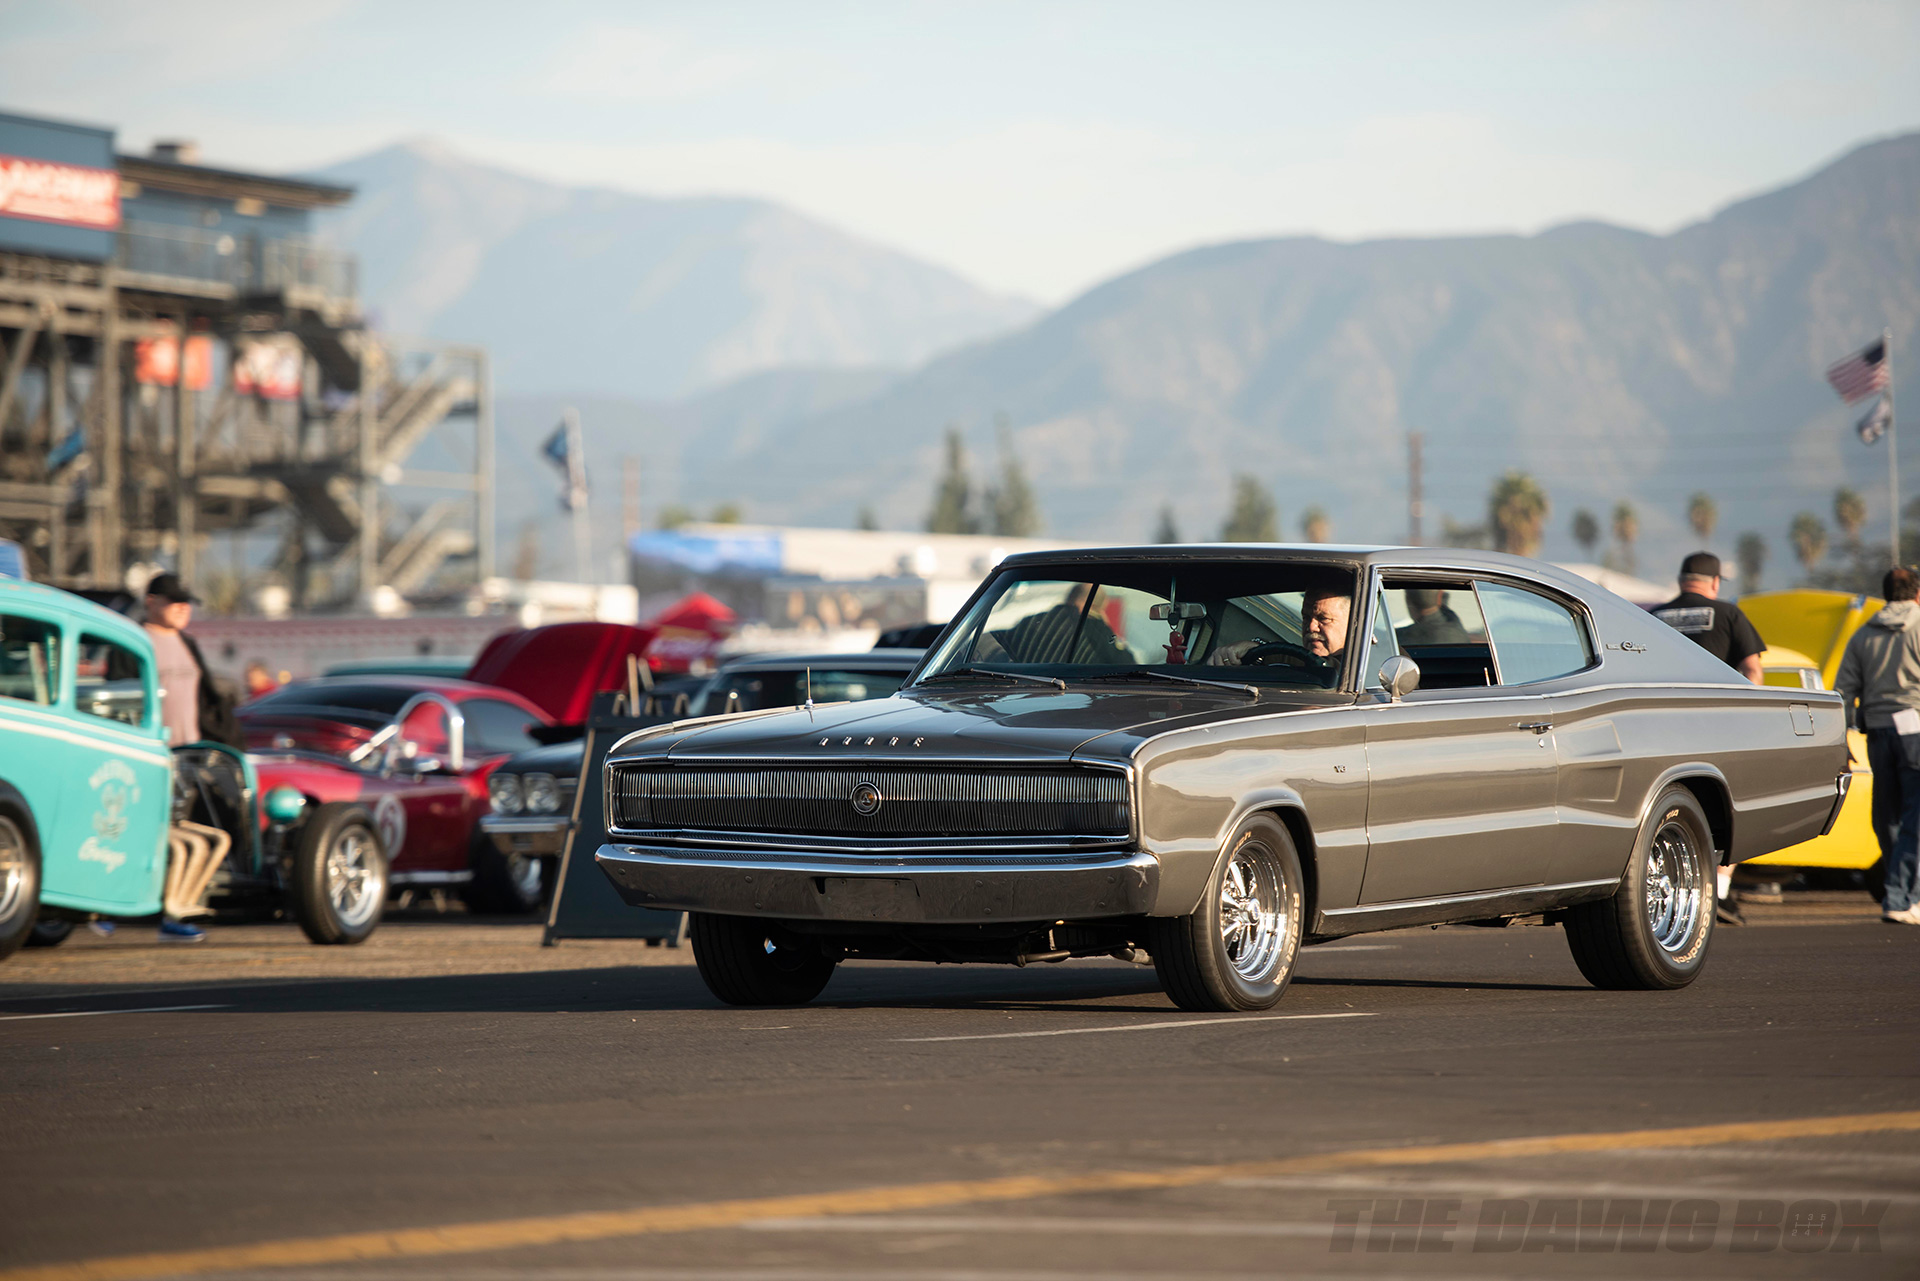 grey dodge dragtser at the In-N-Out Hot Rod 70th Celebration